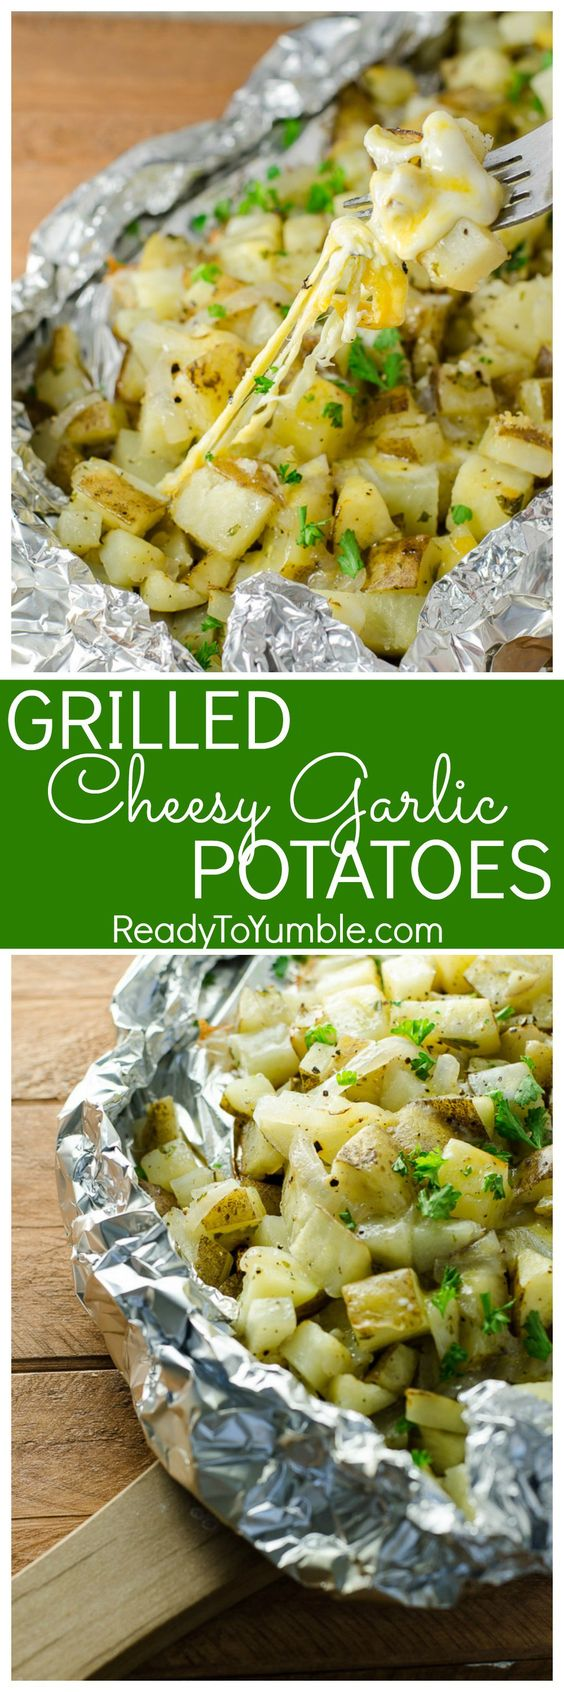 Grilled Cheesy Garlic Potatoes by ReadyToYumble.com